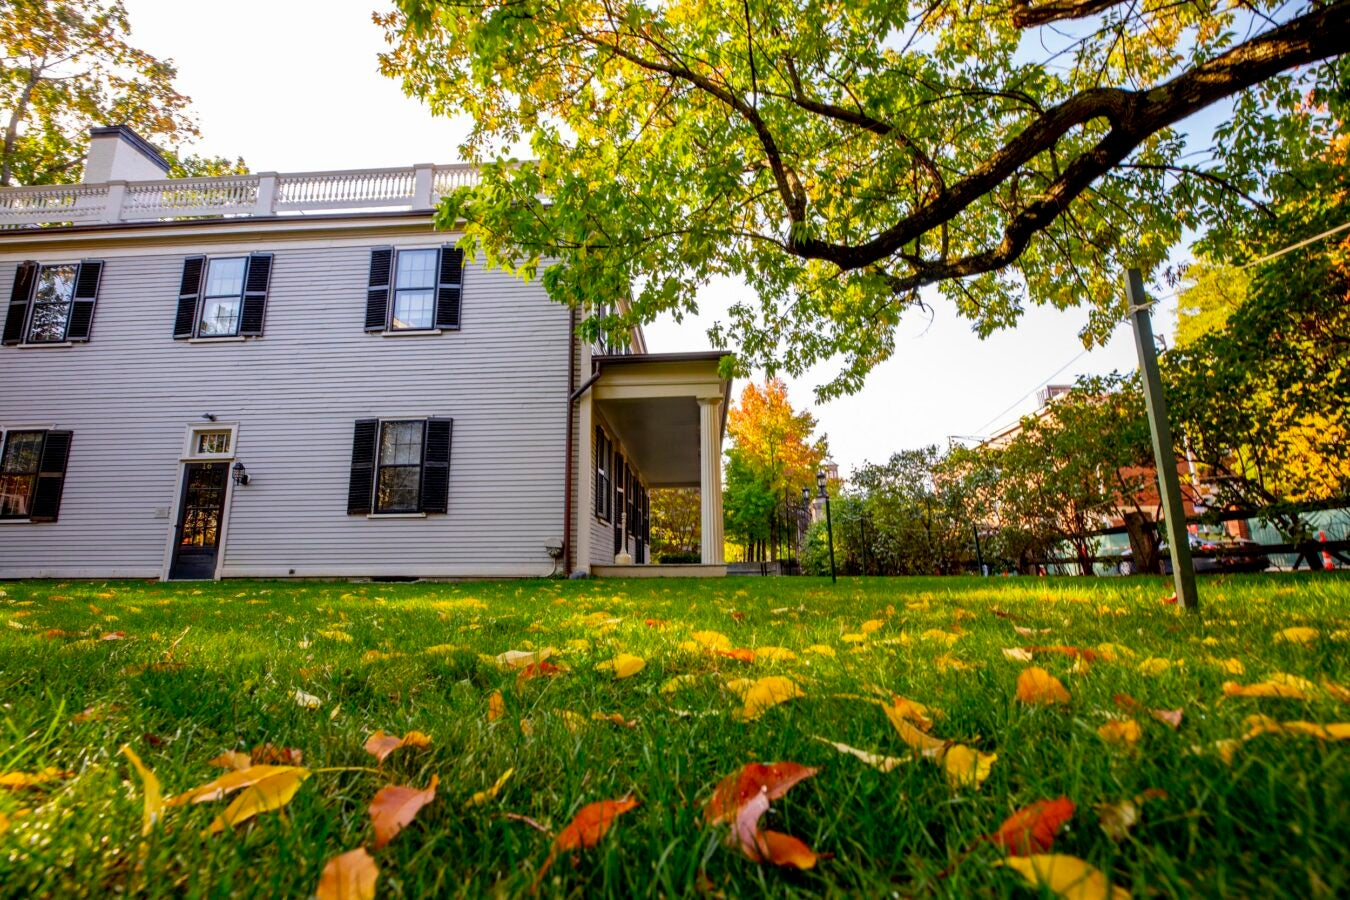 Autumn leaves on a green lawn with a white house in the background